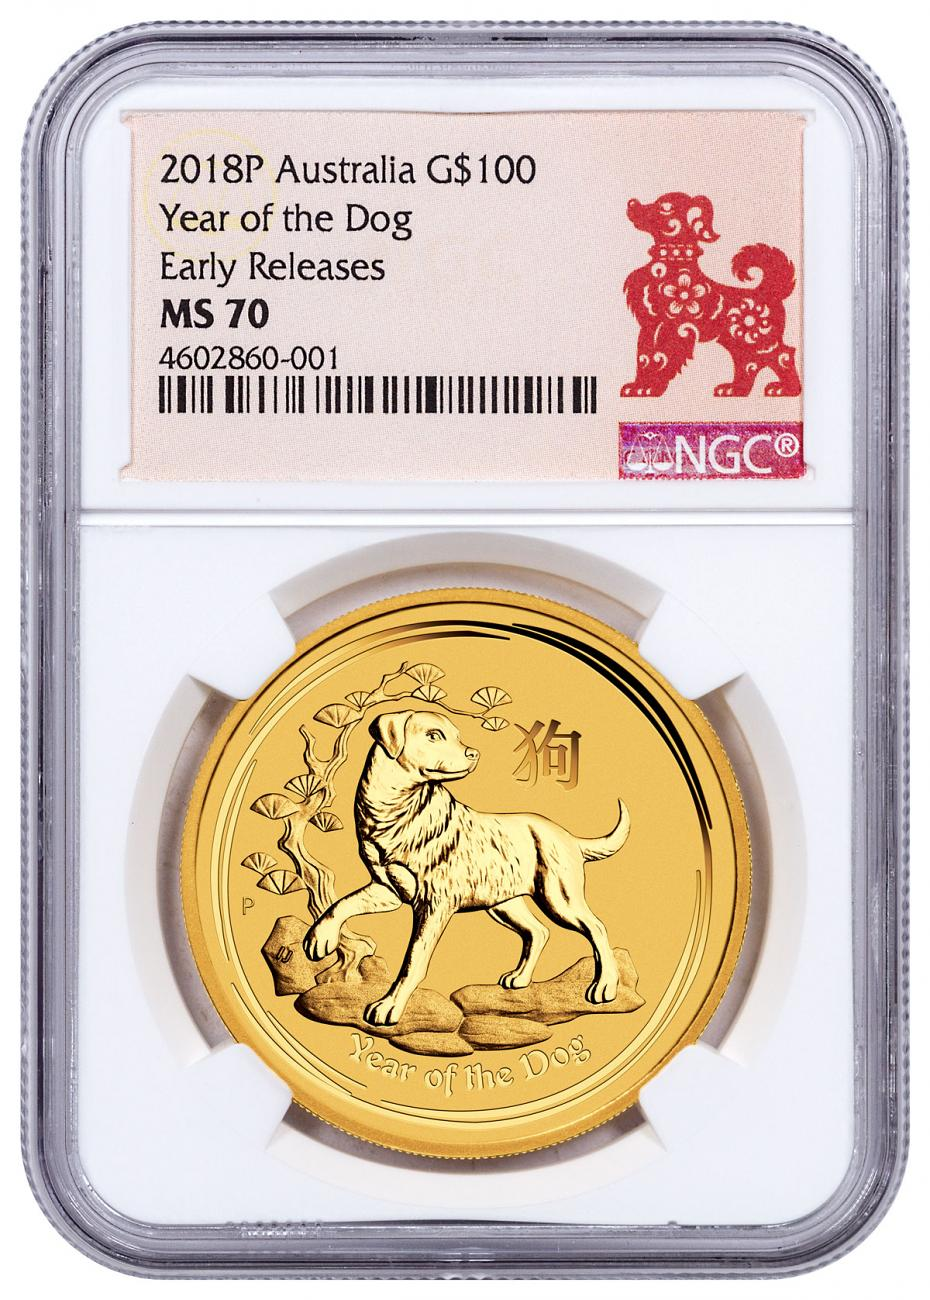 2018-P Australia Year of the Dog 1 oz Gold Lunar (Series 2) $100 Coin NGC MS70 ER Year of the Dog Label